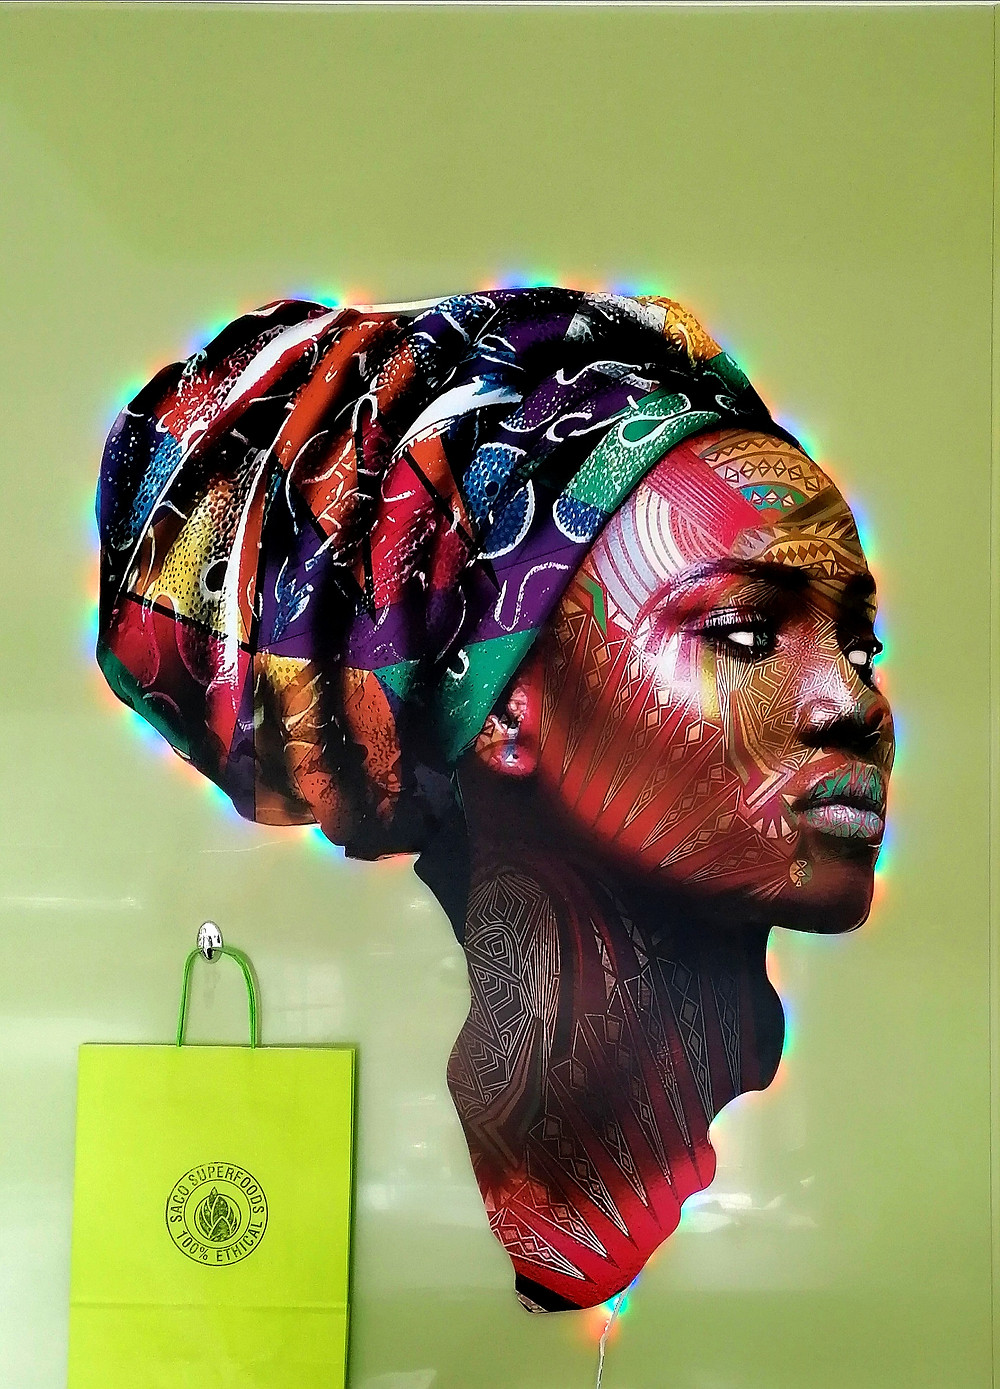 Mama Africa - art piece created by French /Senegalese artist Baro Sarré